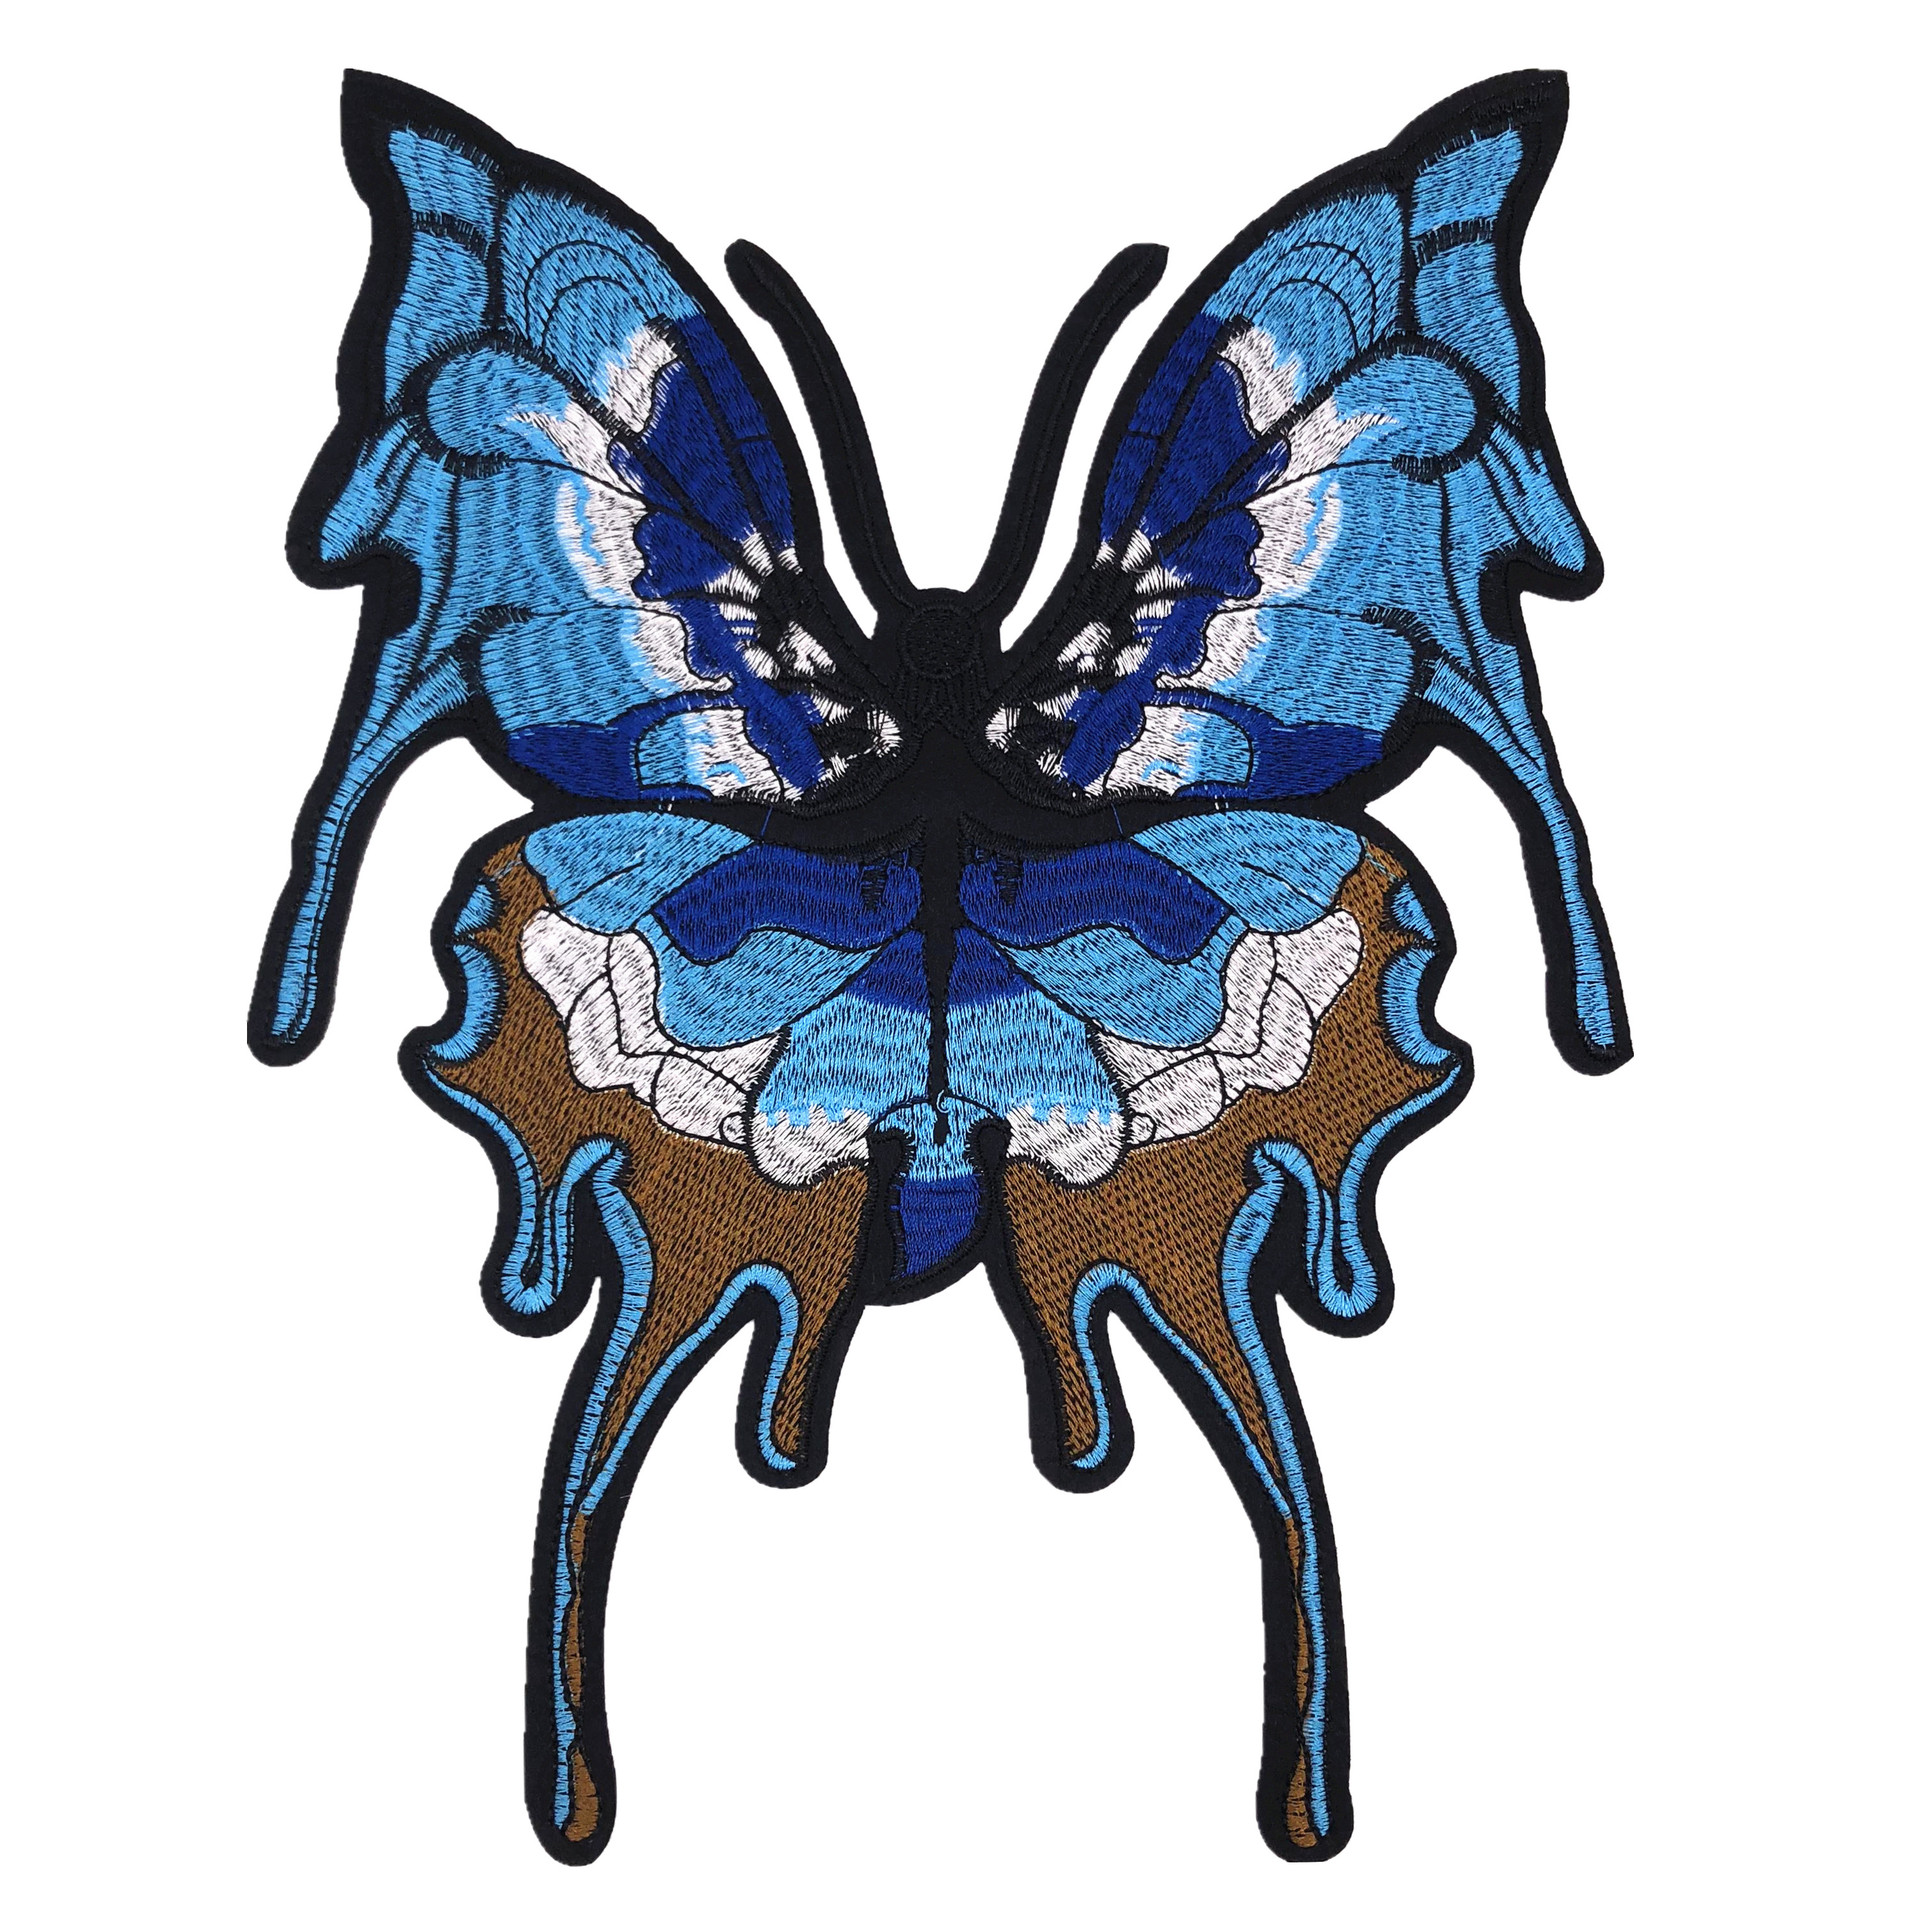 New Large Butterfly Cloth Patch Patch Clothing Accessories Embroidery DIY Computer Embroideringclothes Decals